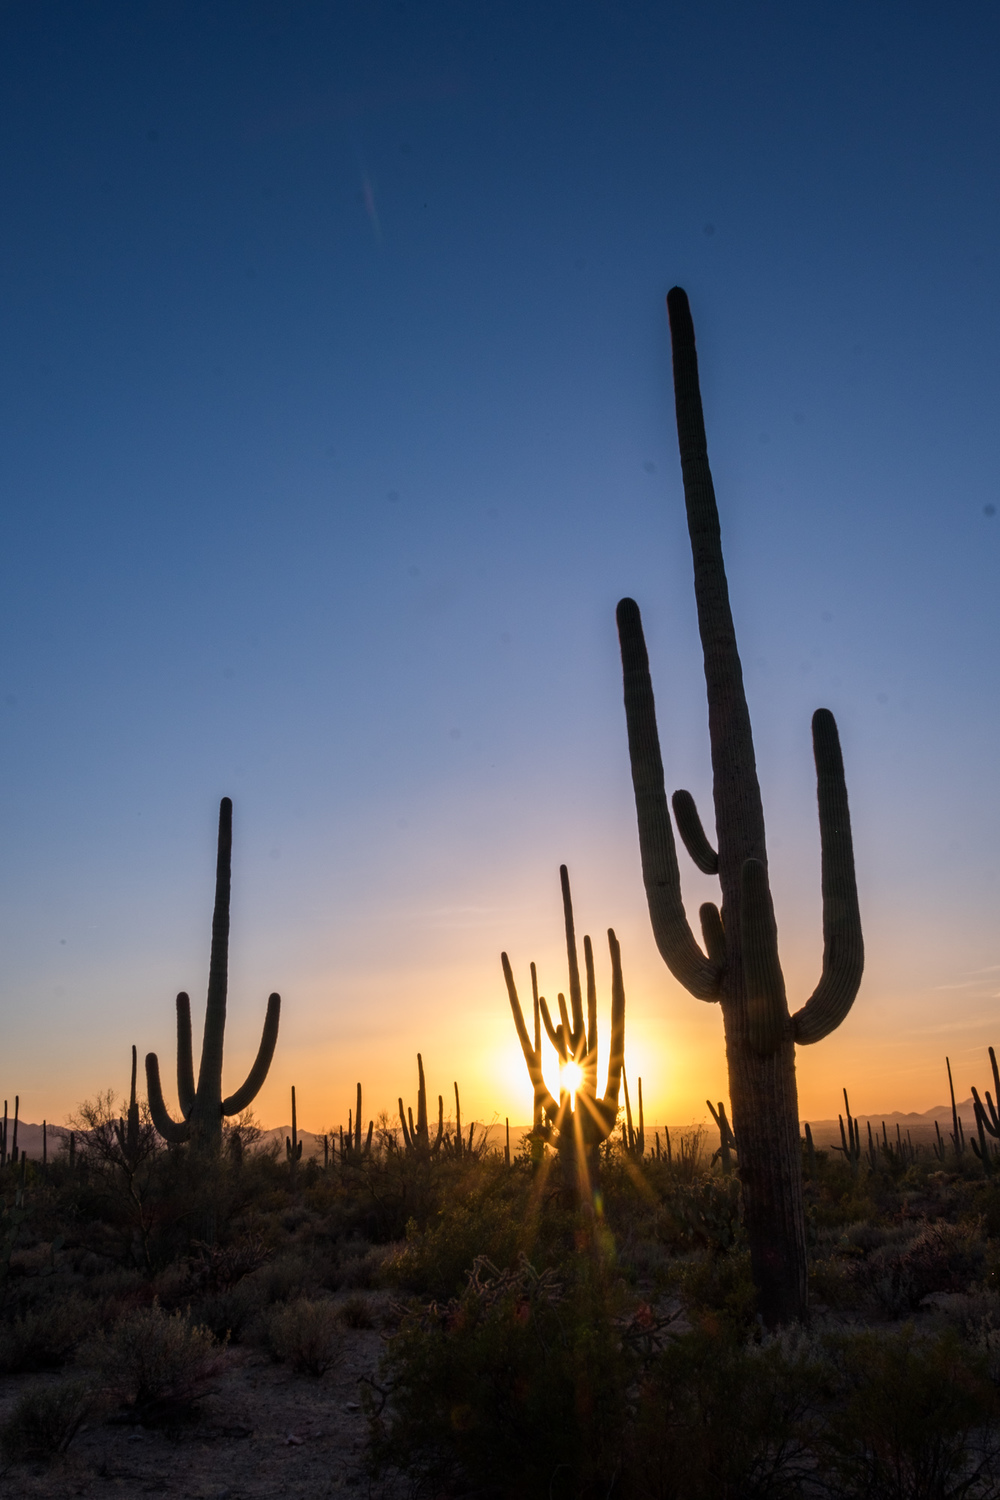 Our first sunset with the giant saguaro.